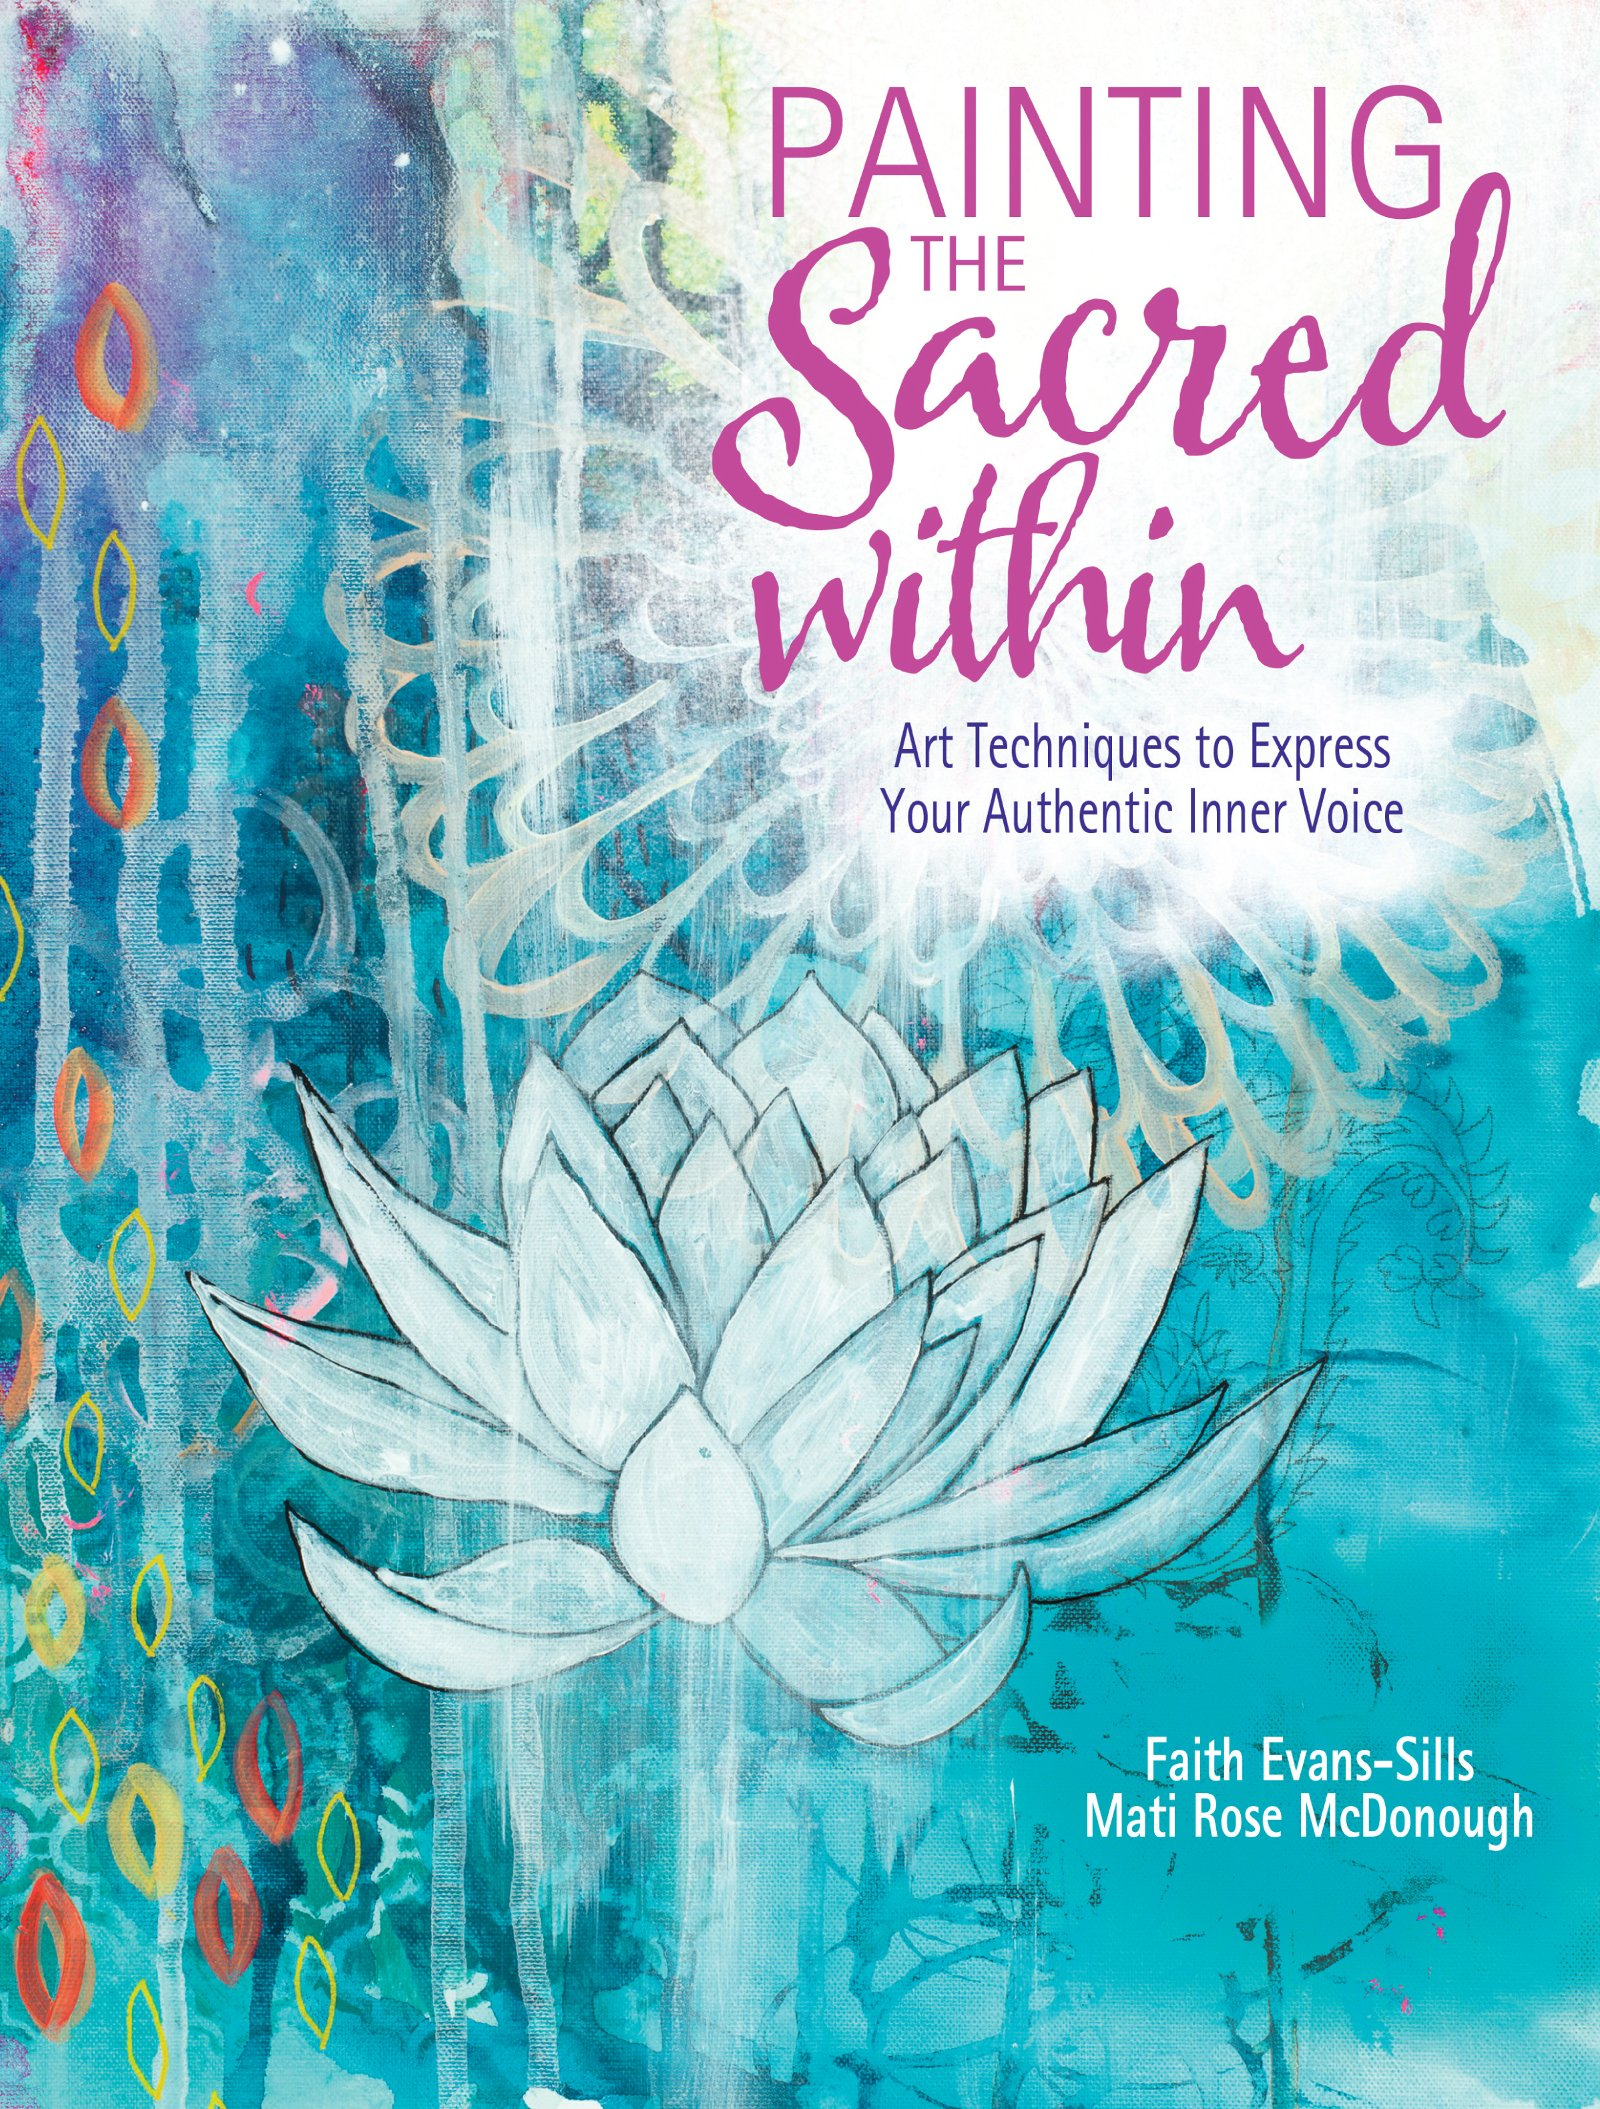 Painting the Sacred Within: Art Techniques to Express Your Authentic Inner  Voice: Faith Evans-Sills, Mati Rose McDonough: 9781440348471: Amazon.com:  Books